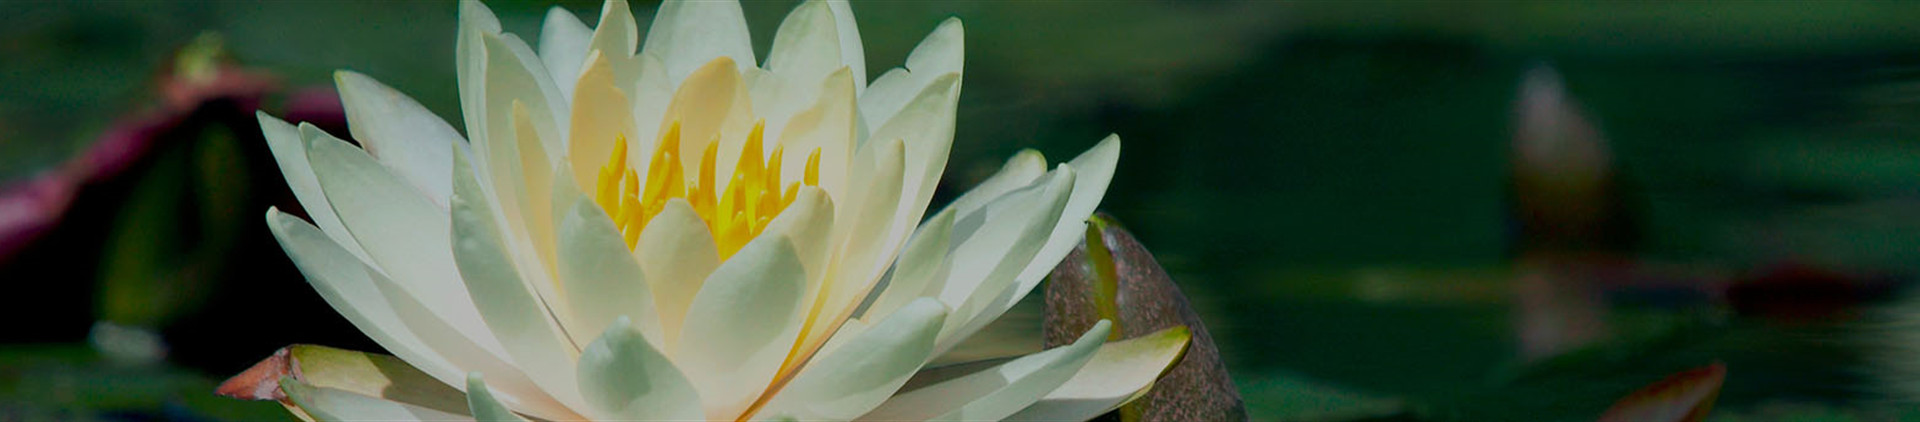 Resources | Reynolds Jonkhoff Funeral Home & Cremation Services